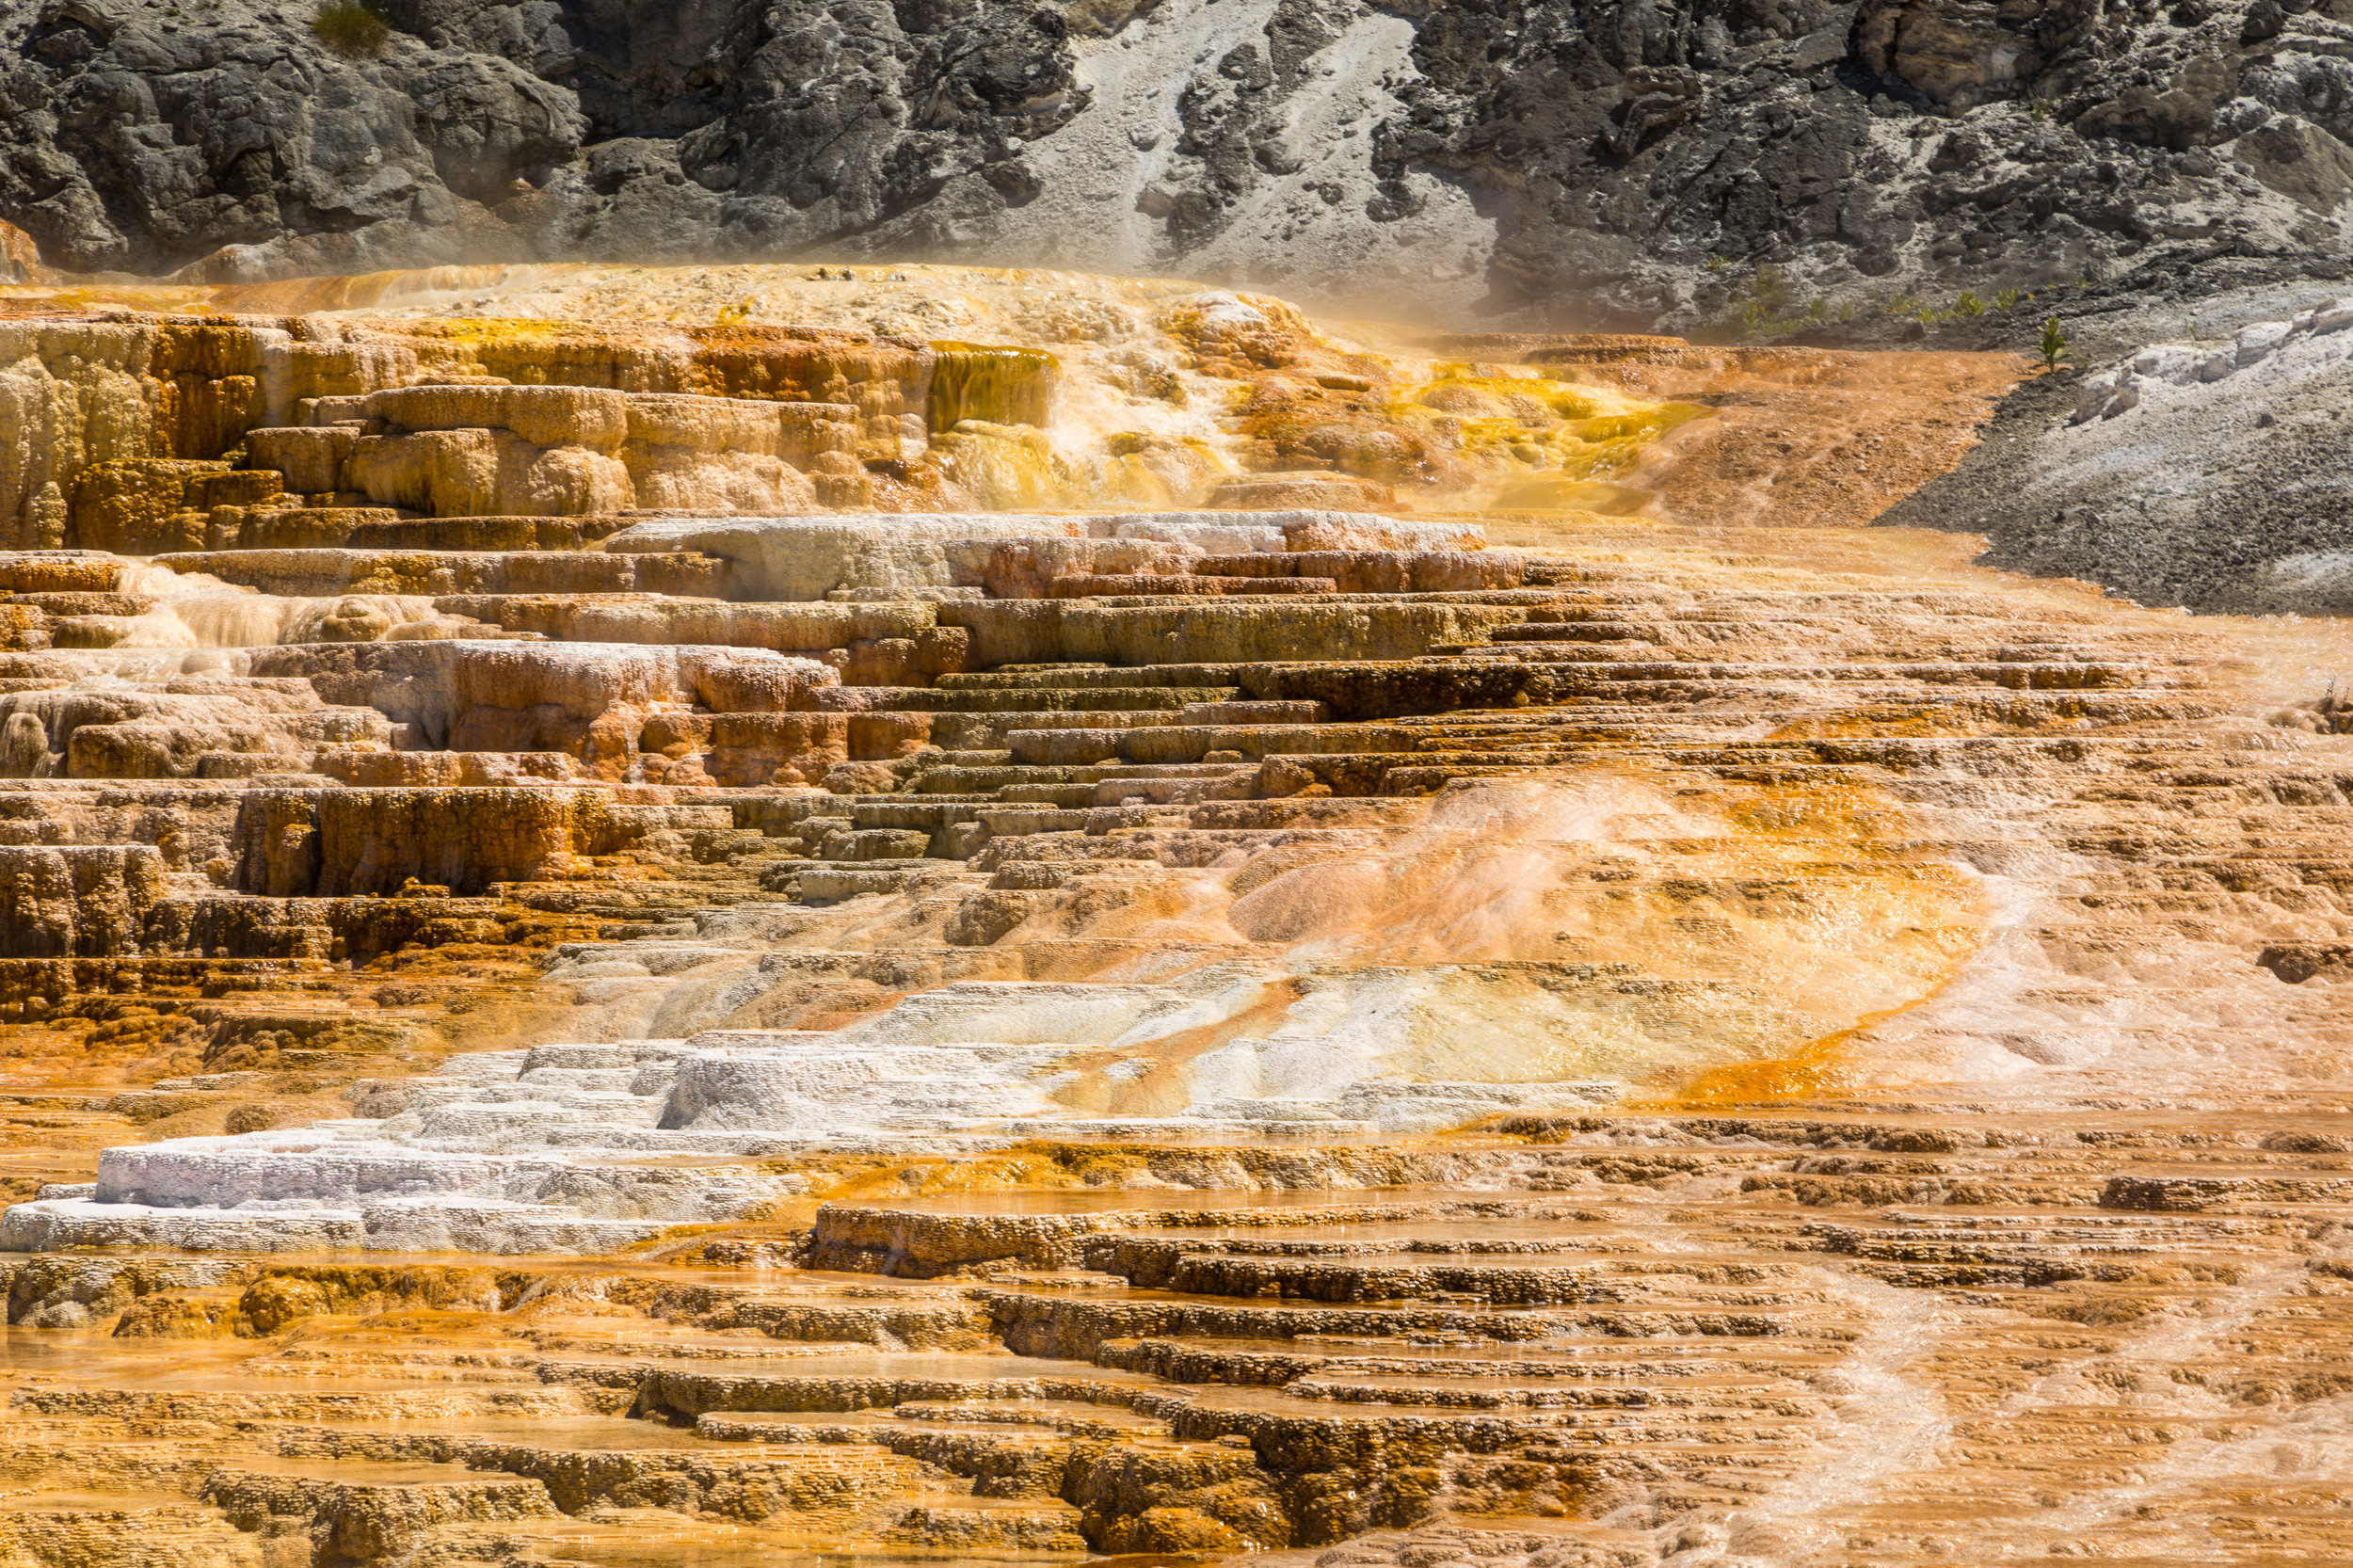 Mammoth Hot Springs, Yellowstone National Park, Image # 7321